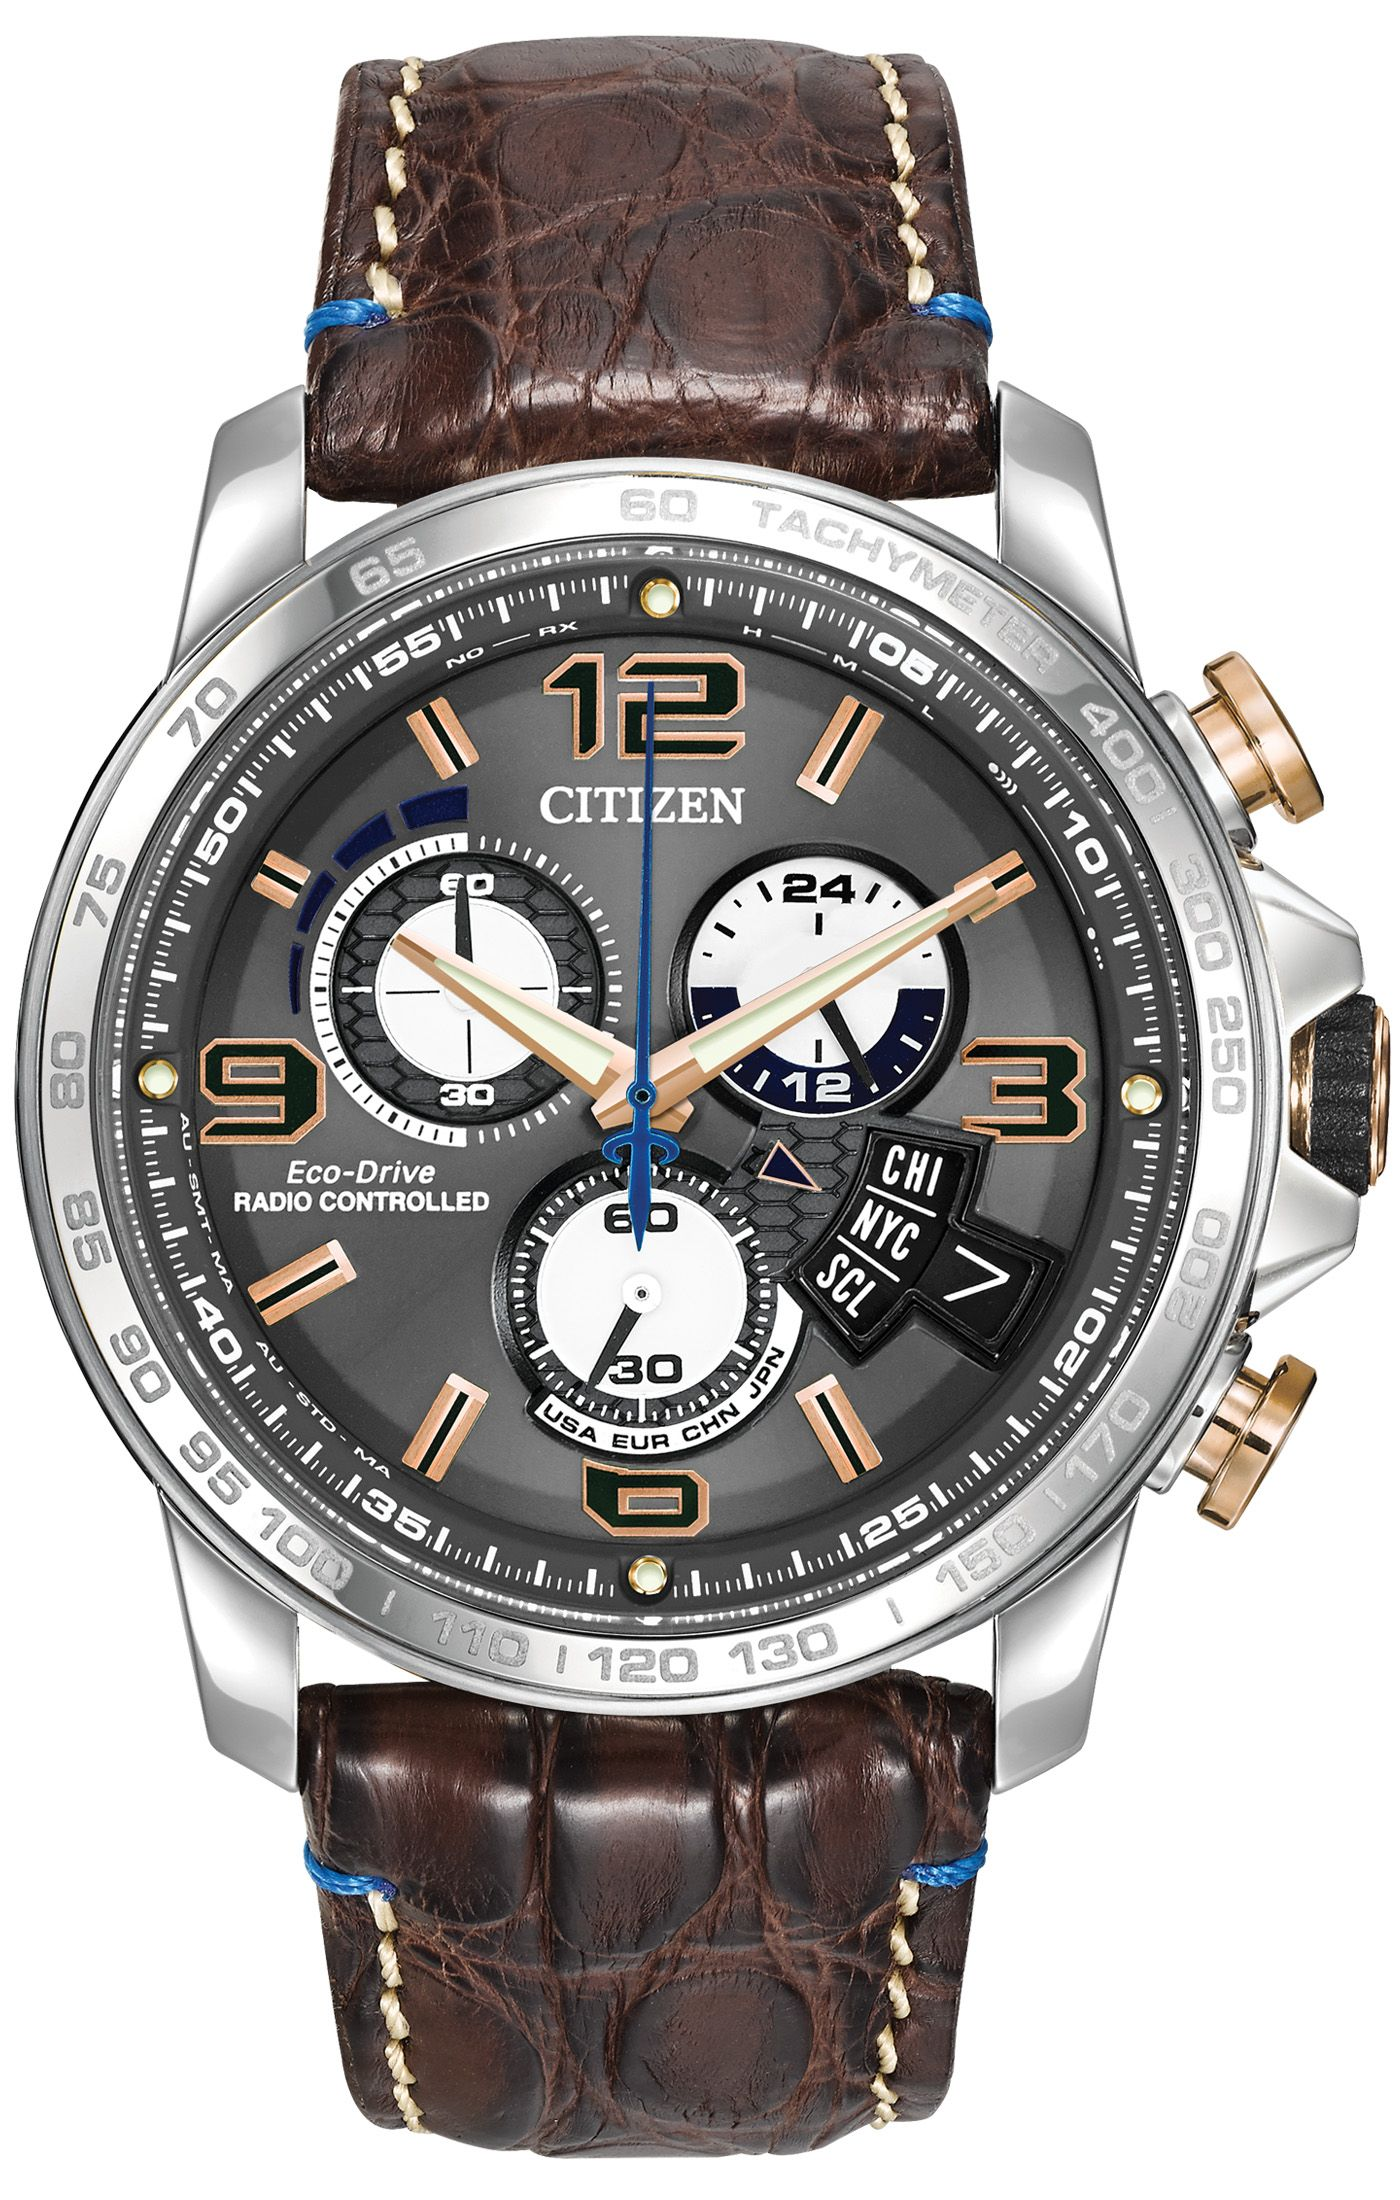 261031349d3 Citizen Citizen Eco-Drive Chrono-Time A-T Limited Edition BY0100-01H Atomic  Timekeeping